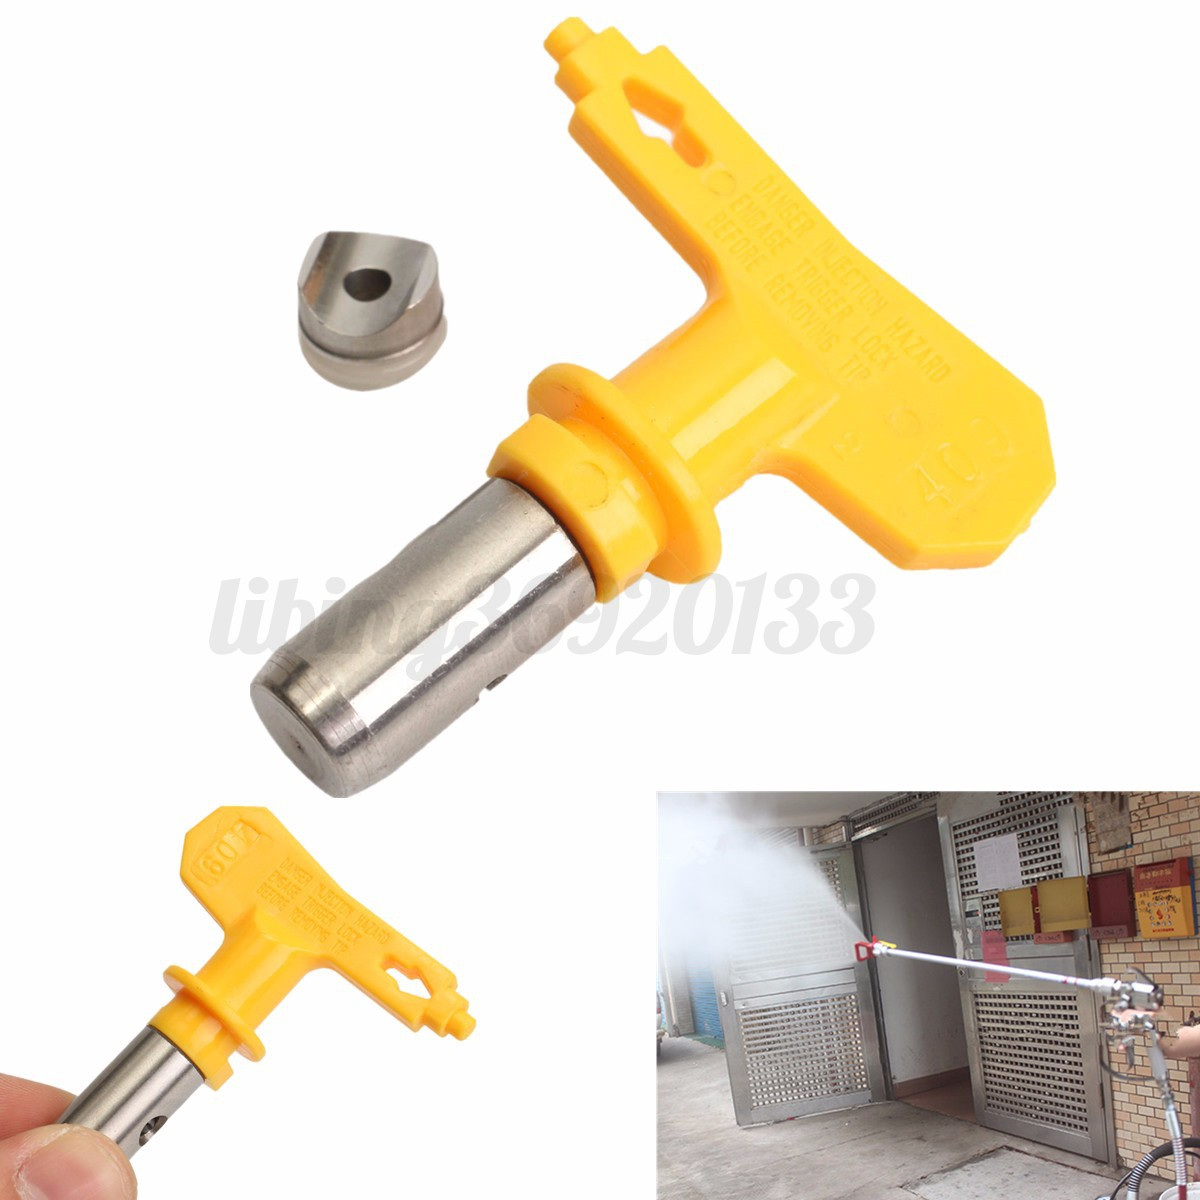 airless spray tips for graco titan wagner gun paint sprayer nozzle. Black Bedroom Furniture Sets. Home Design Ideas